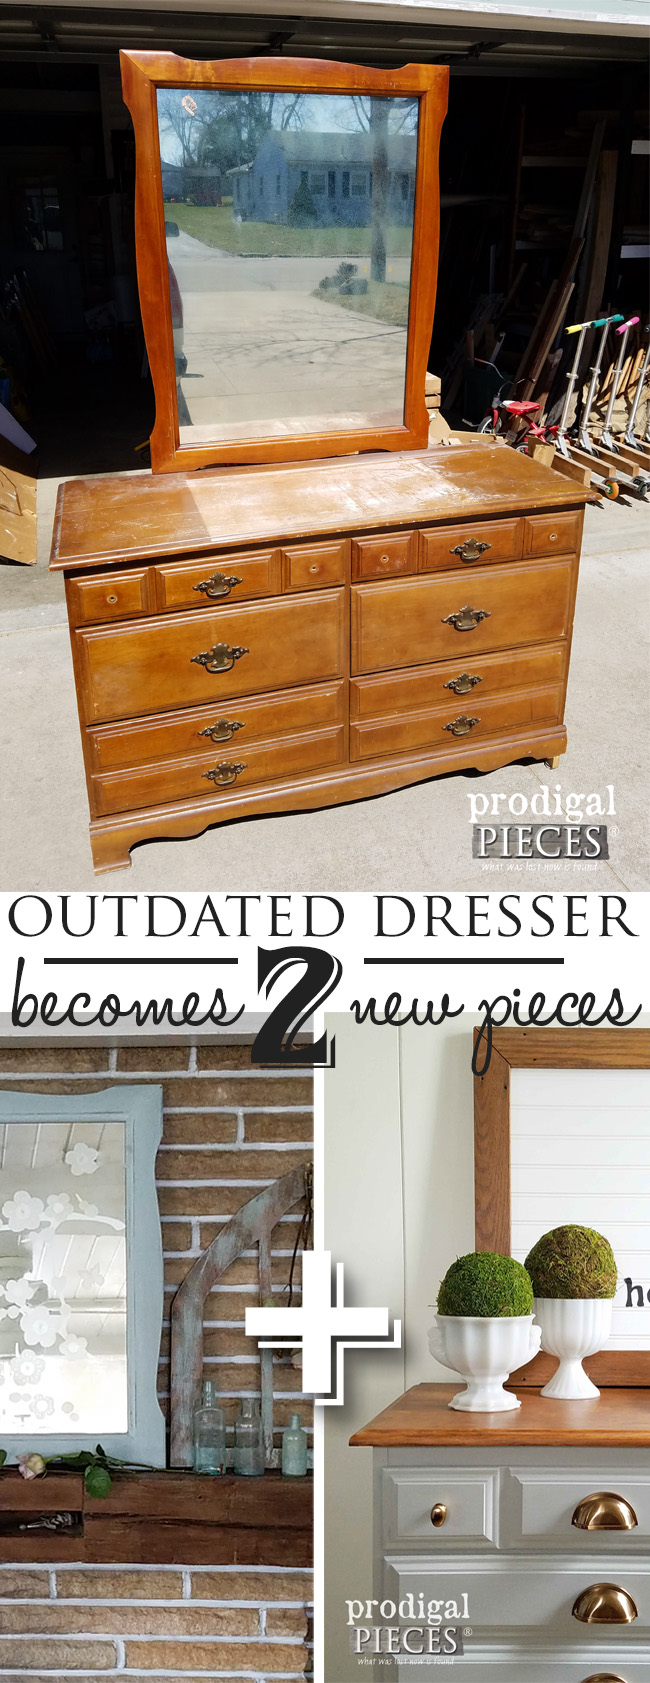 Outdated becomes 2 new projects with a bit of DIY style. See it here by Prodigal Pieces | prodigalpieces.com